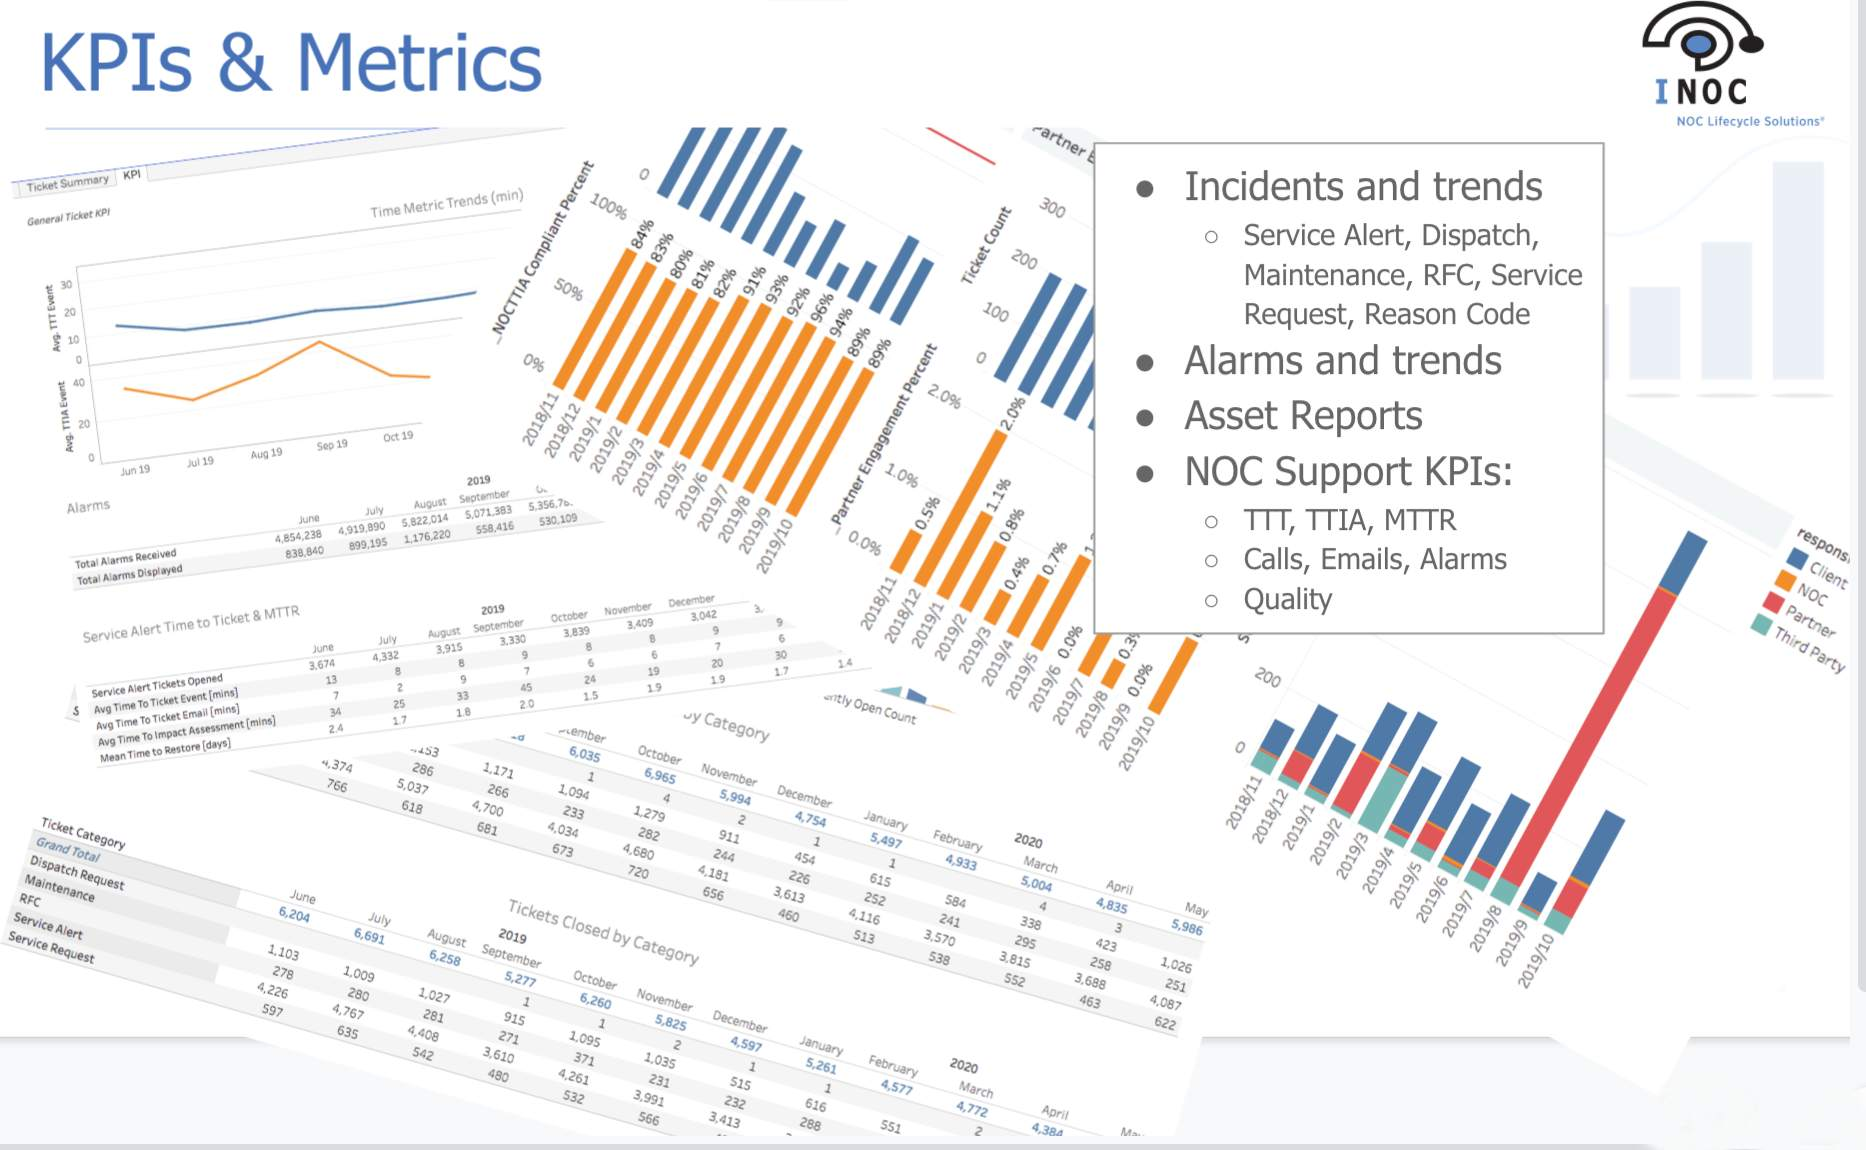 Network Operations Center KPIs and Metrics